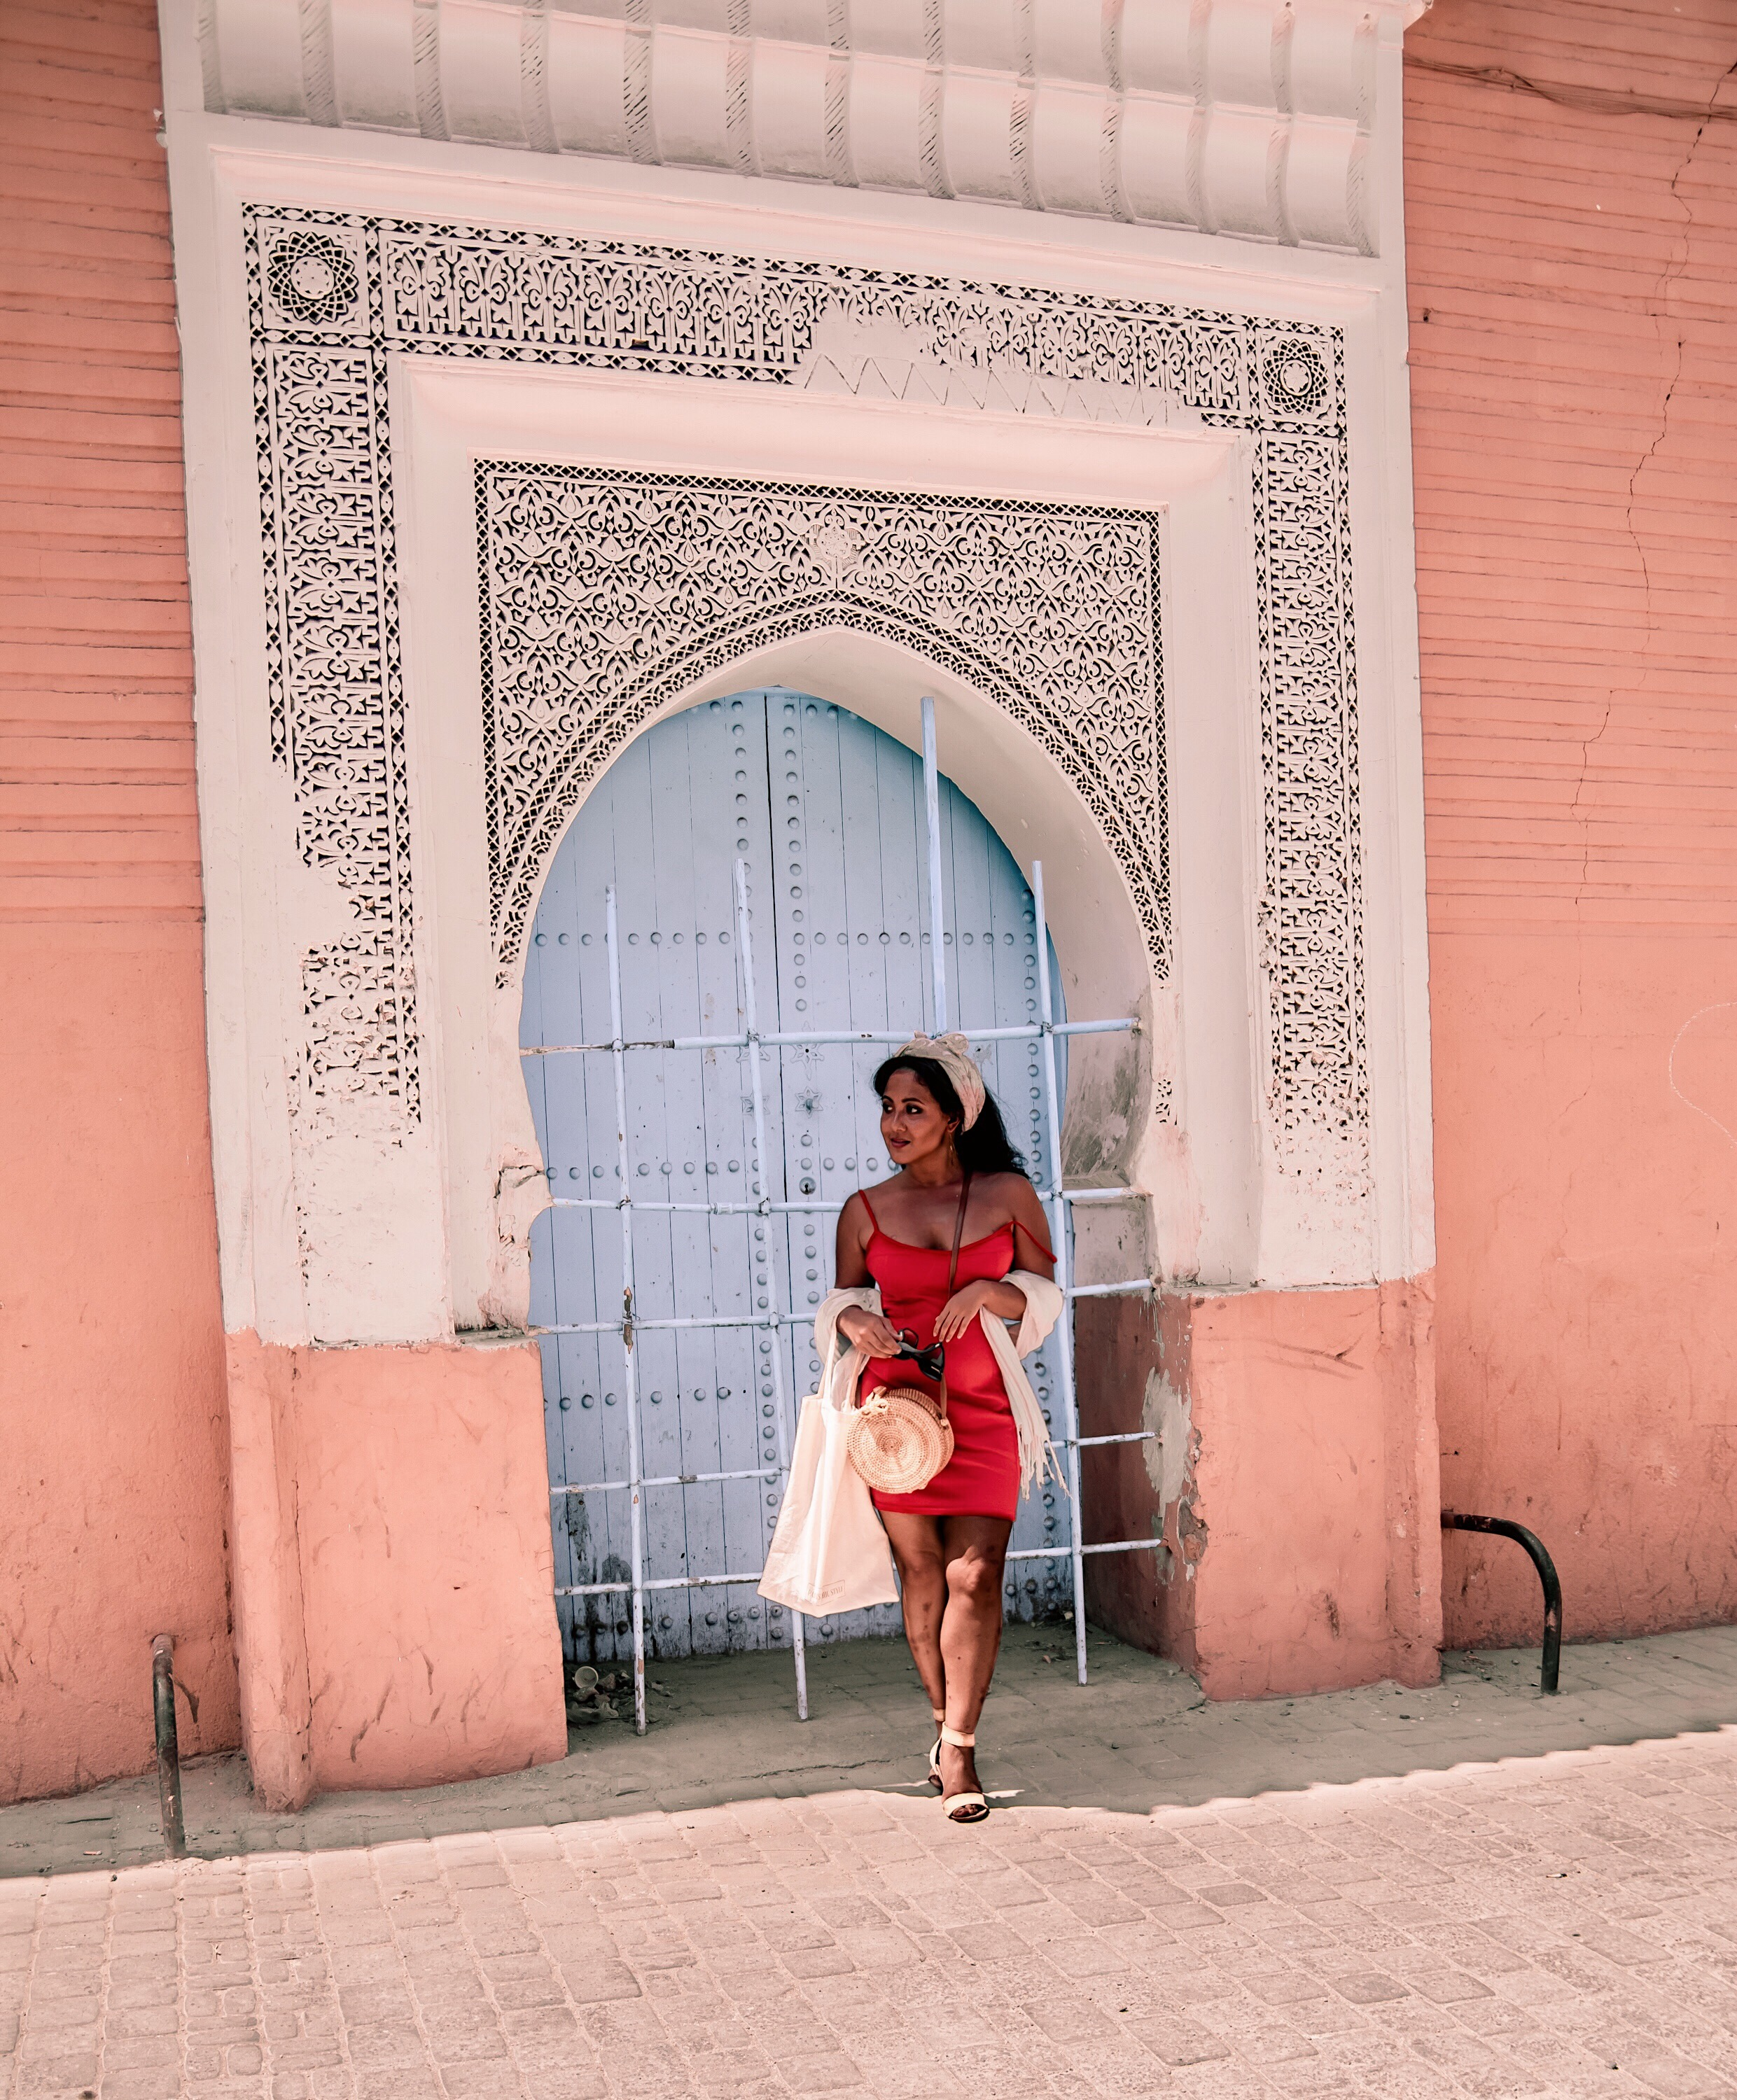 Marjolyn Lago Marj What-Color-Shoes-To-Wear-With-A-Red-Dress-How-To-Wear-A-Summer-Red-Dress-What-To-Wear-In-Morocco-Marrakech-Paris-Chic-Style-2